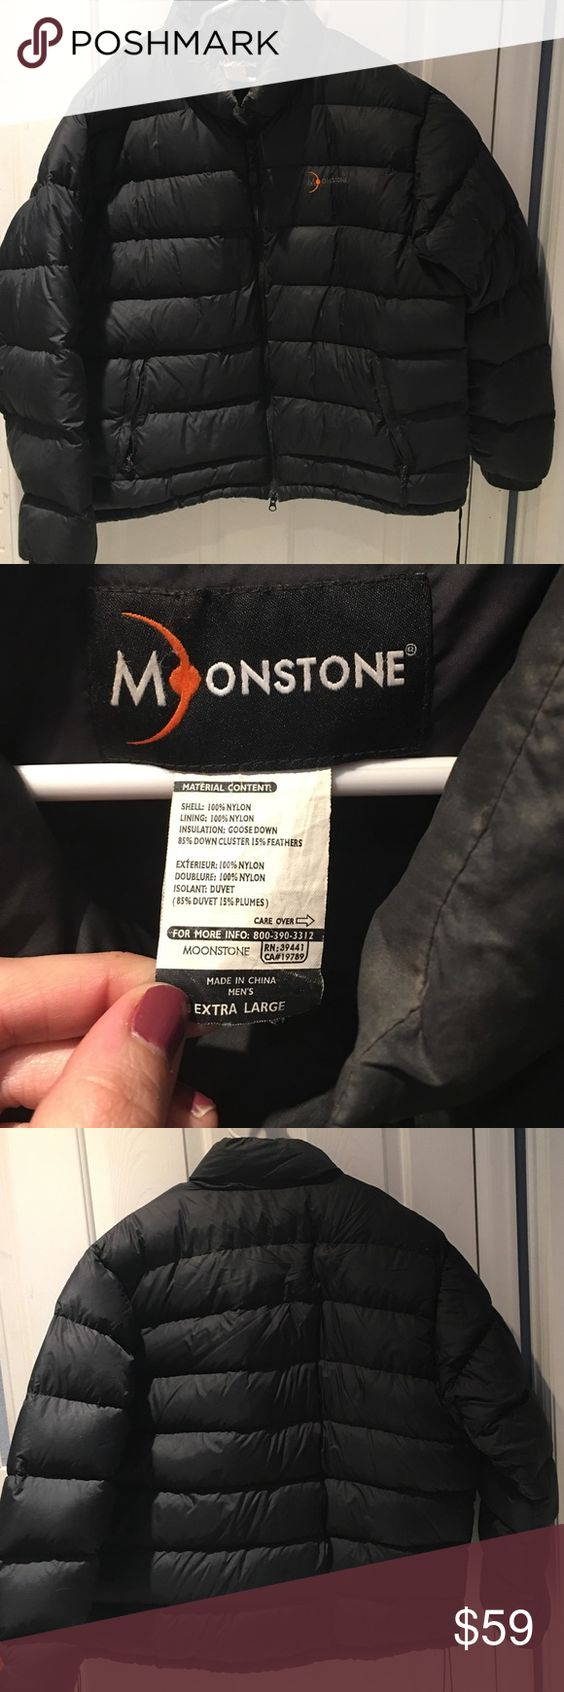 Men's XL moonstone black puffer coat Nice warm black winter puffer coat. Moonstone brand size XL. Smoke free home. moonstone Jackets & Coats Puffers